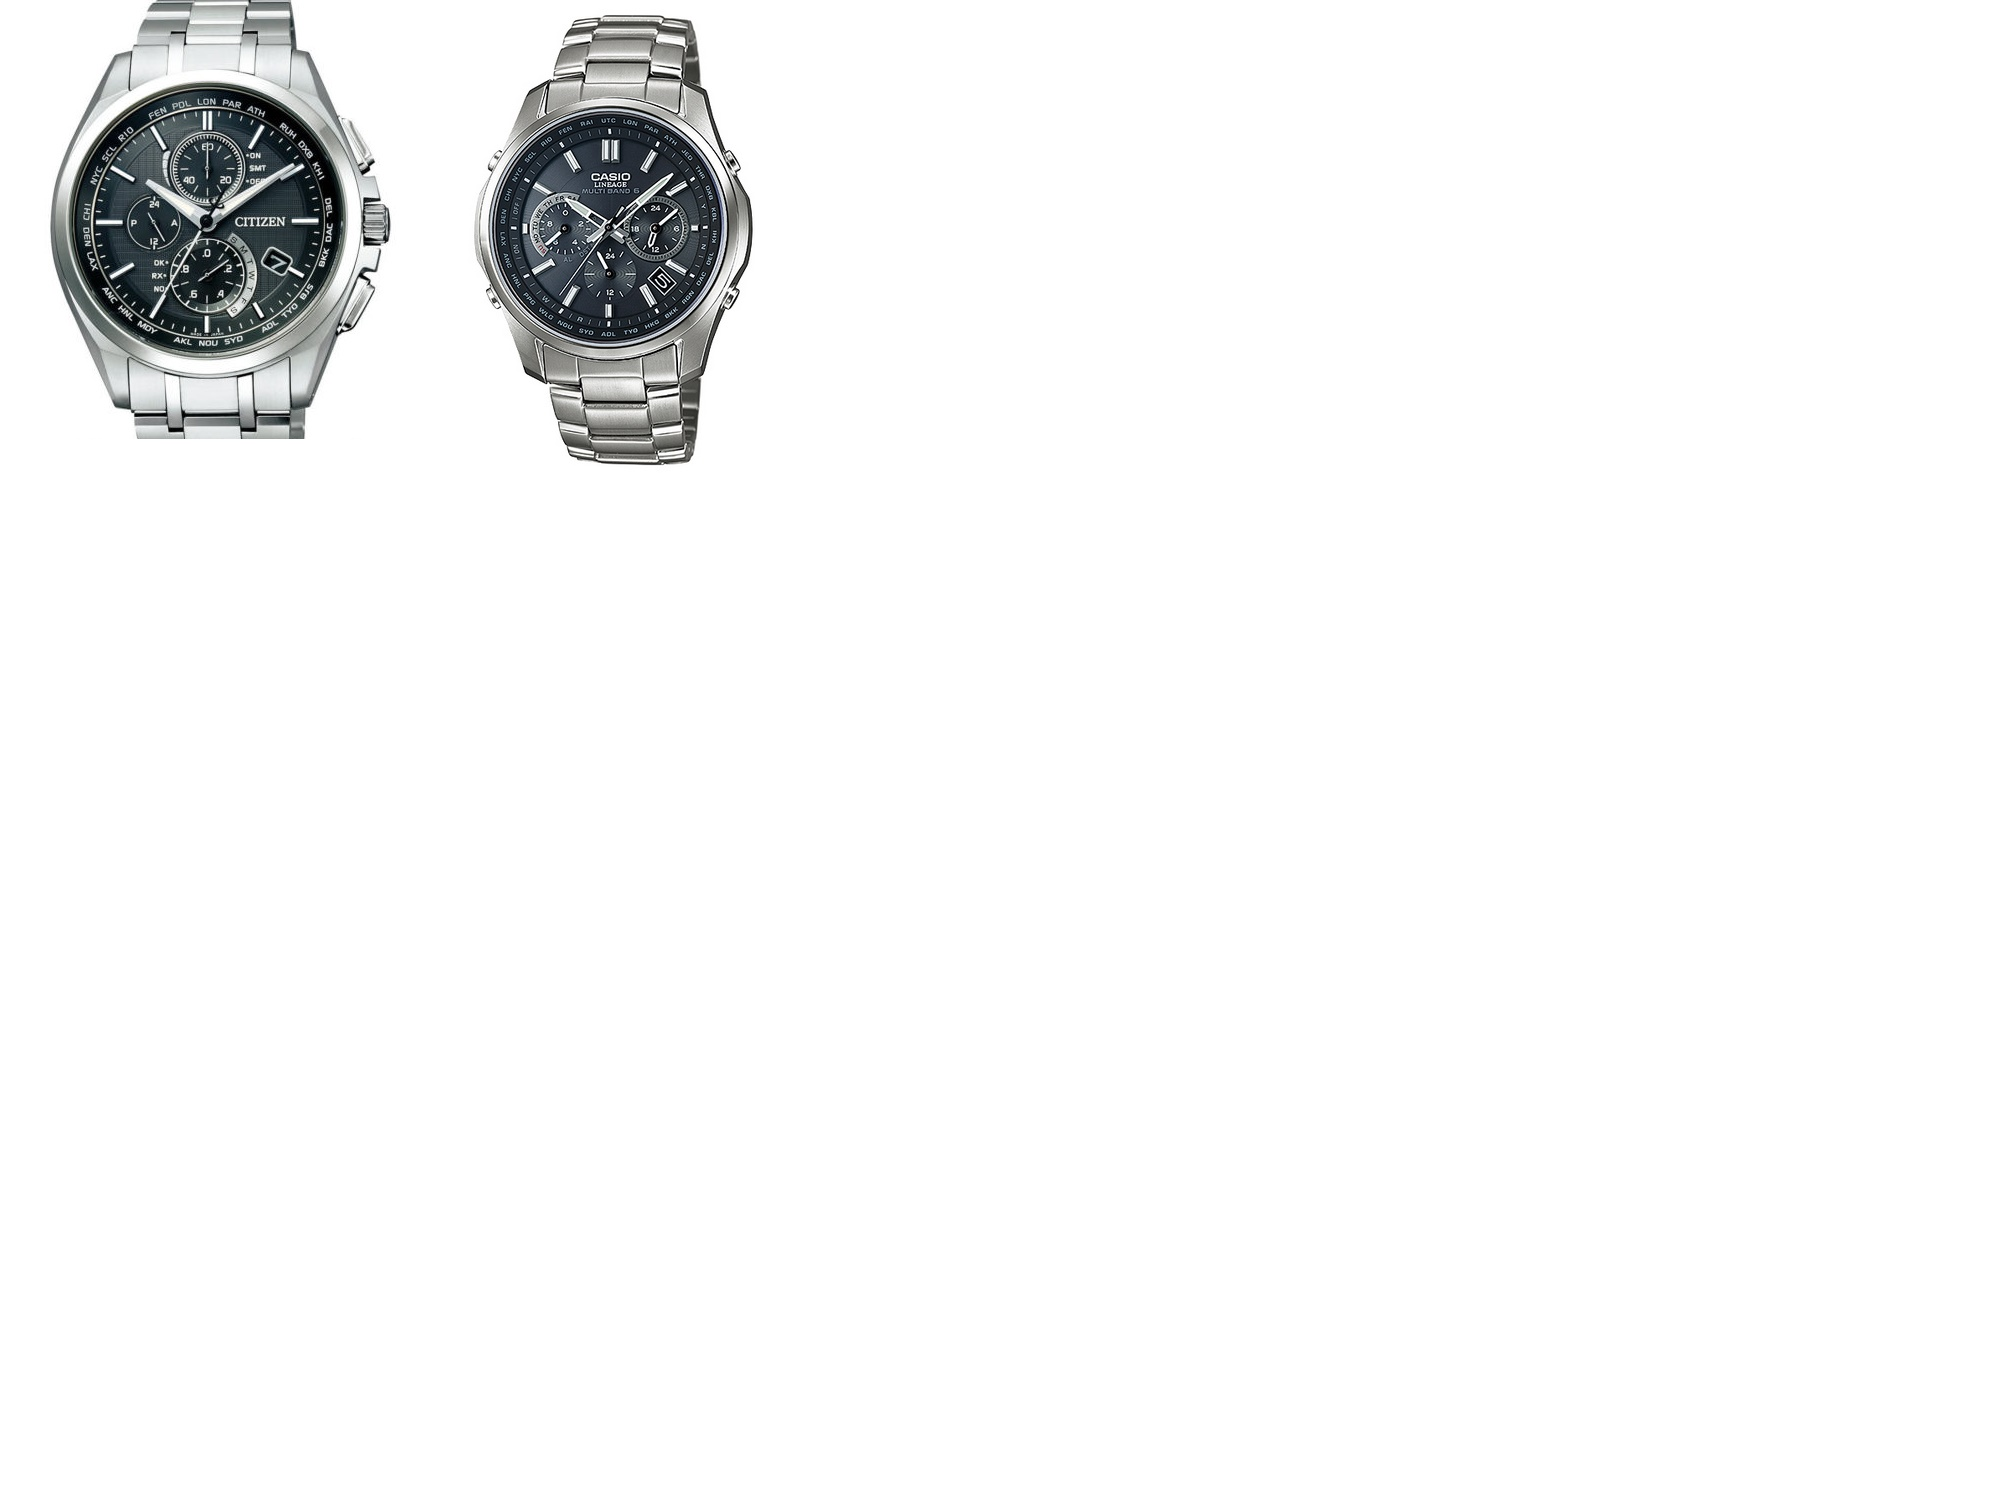 Click image for larger version.  Name:watch.jpg Views:533 Size:177.3 KB ID:6831218